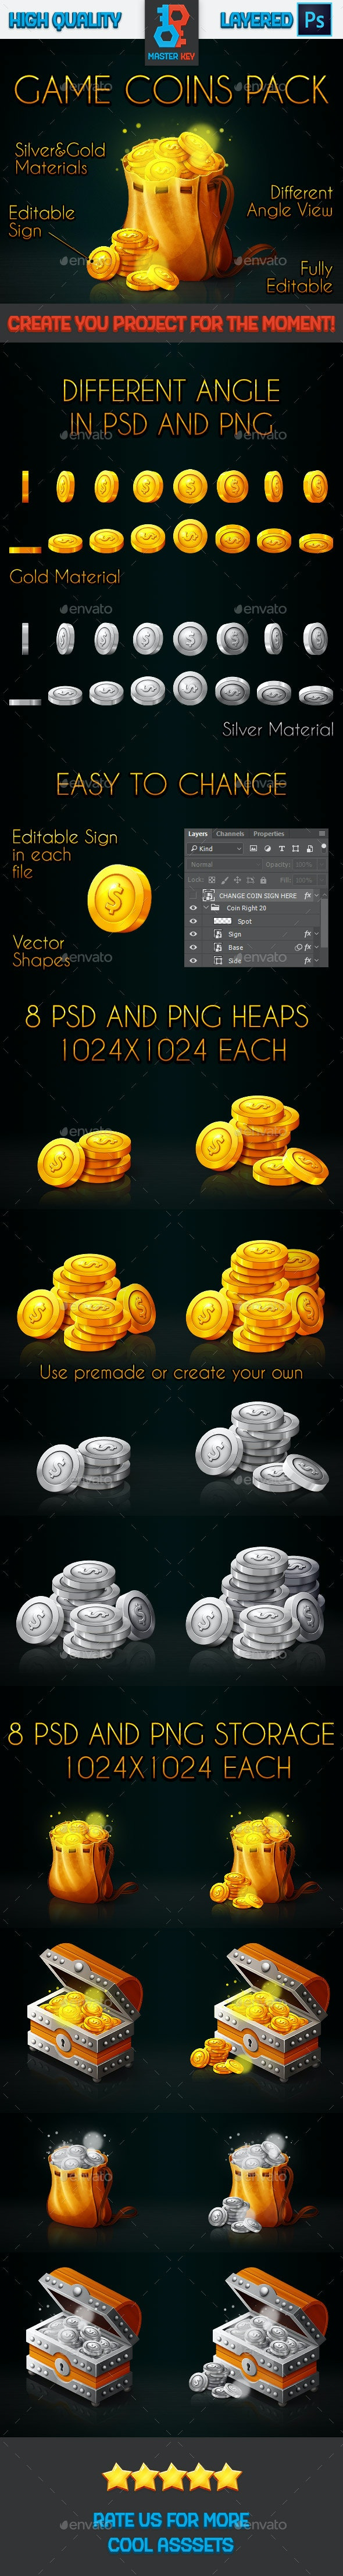 Game Coins Pack - Miscellaneous Game Assets